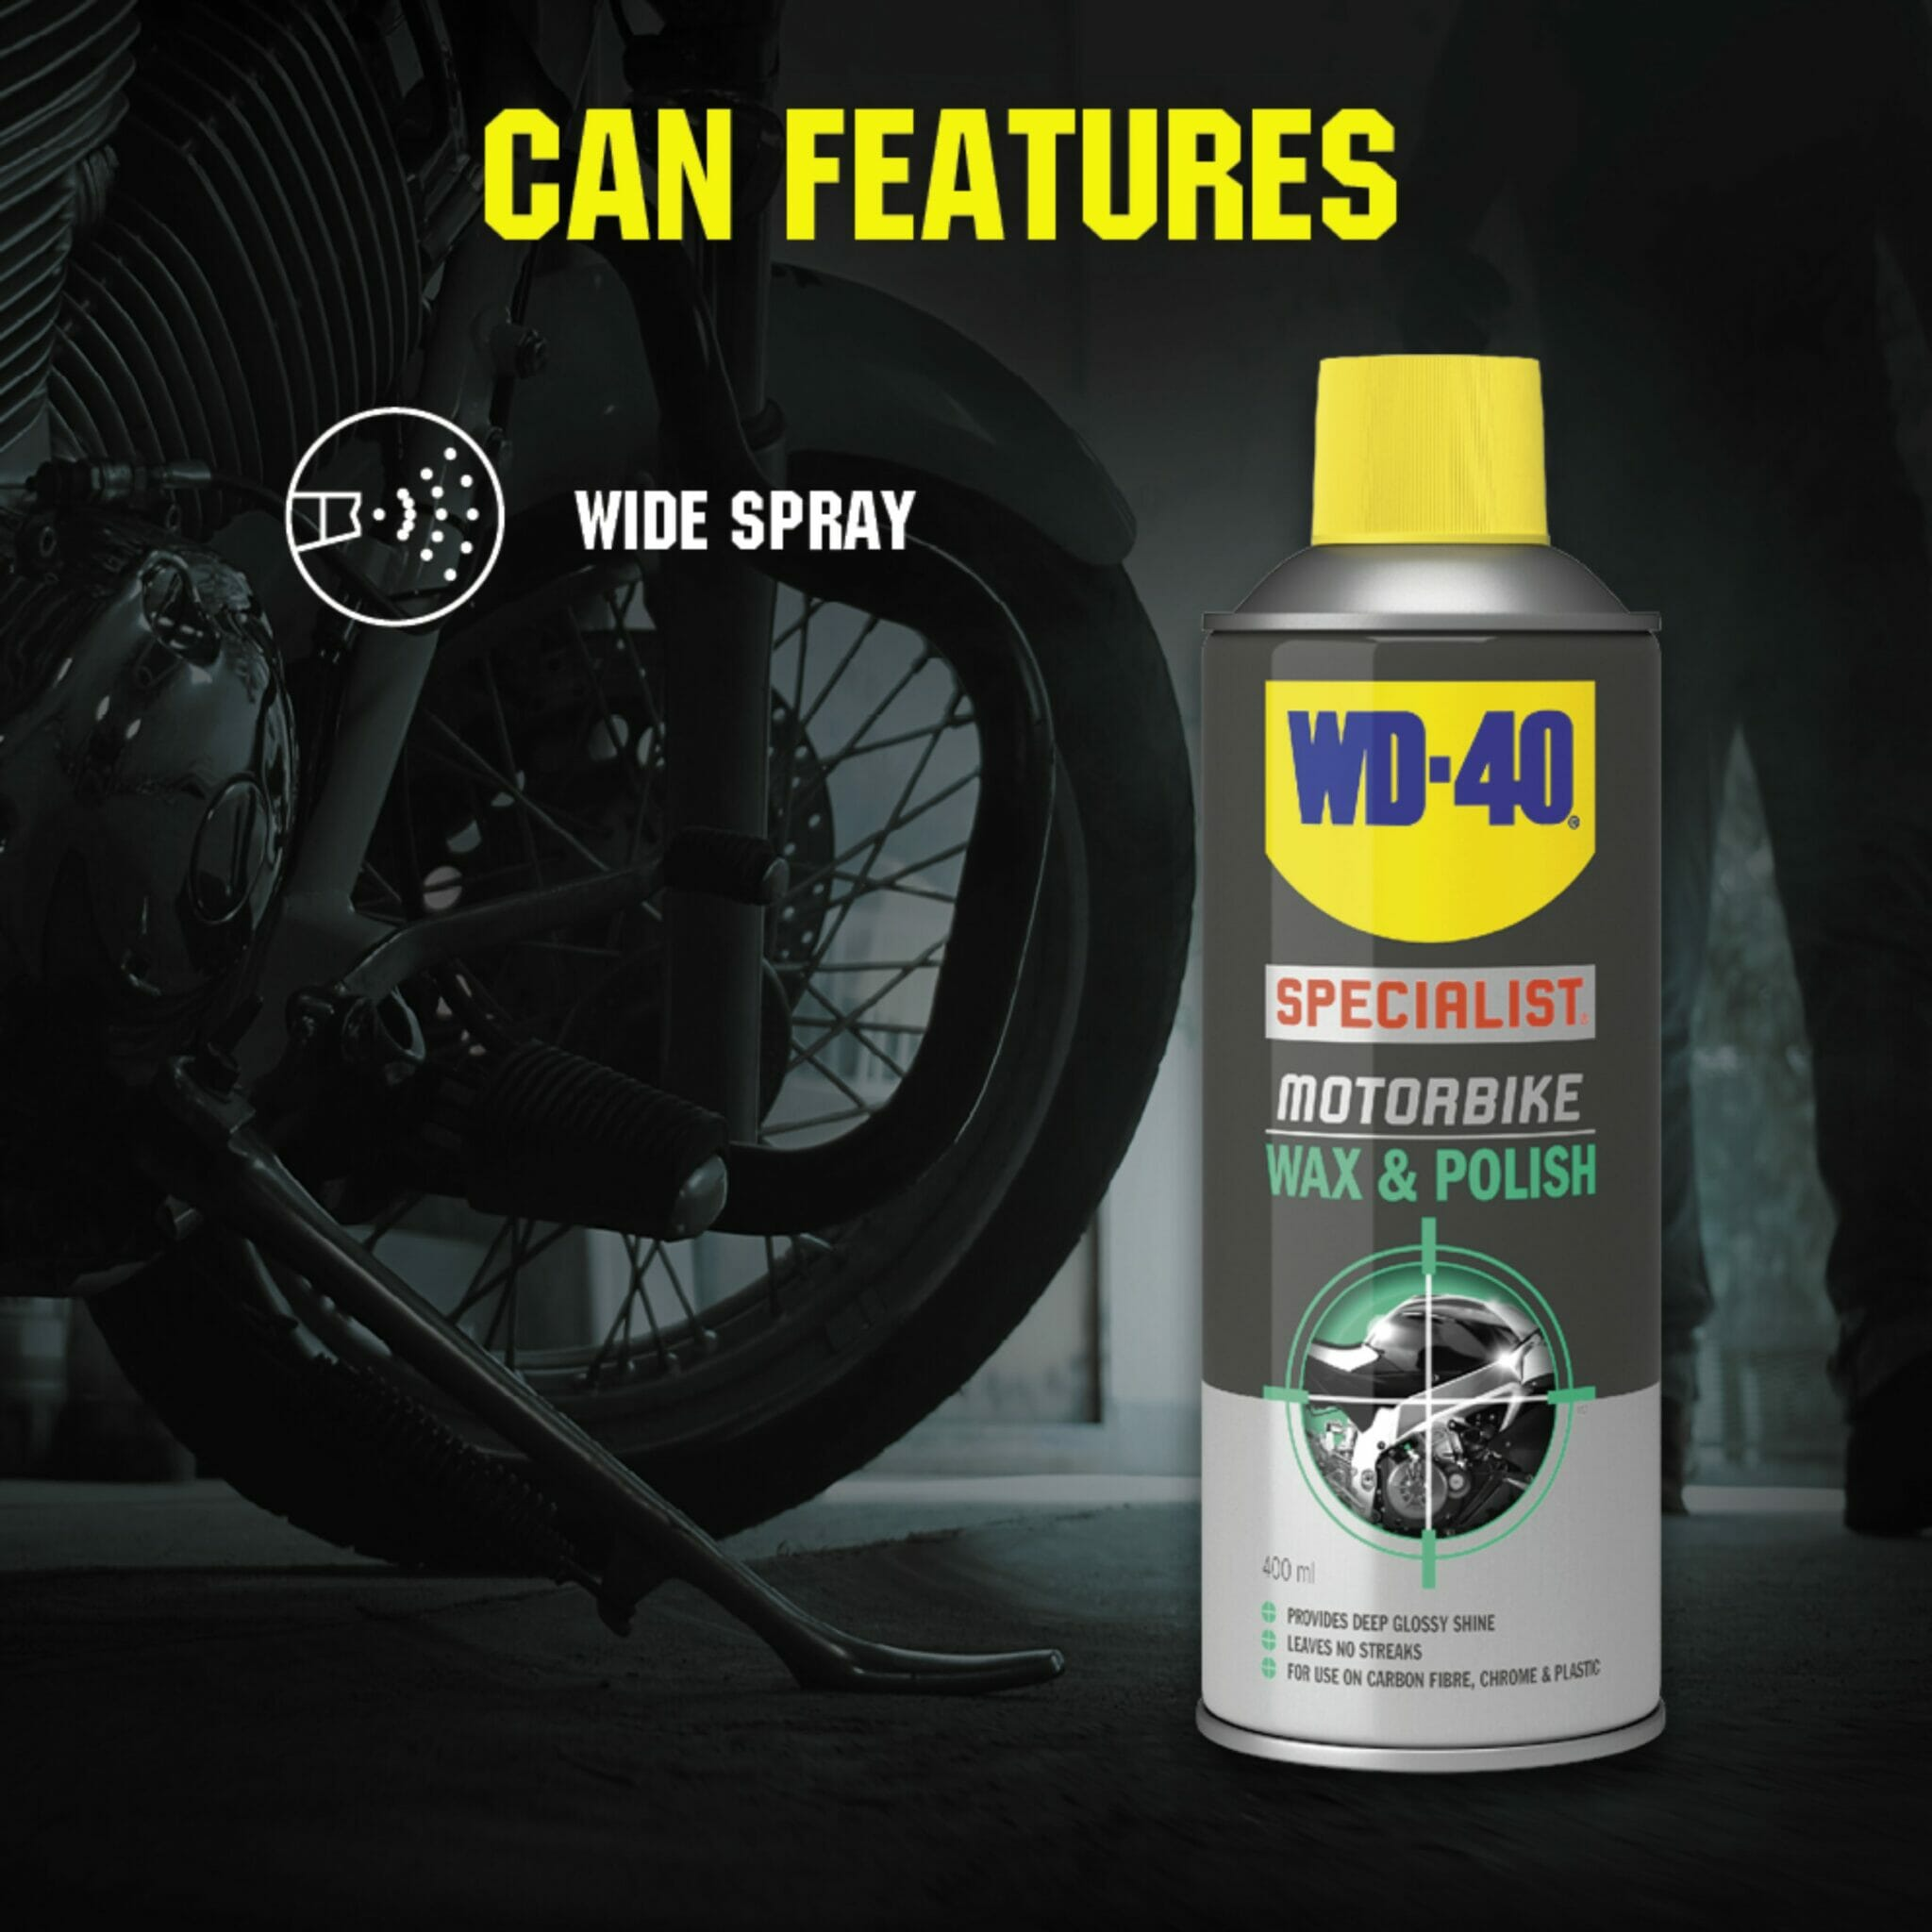 uk wd40 specialist motorbike wax polish 400ml can features lifestyle background